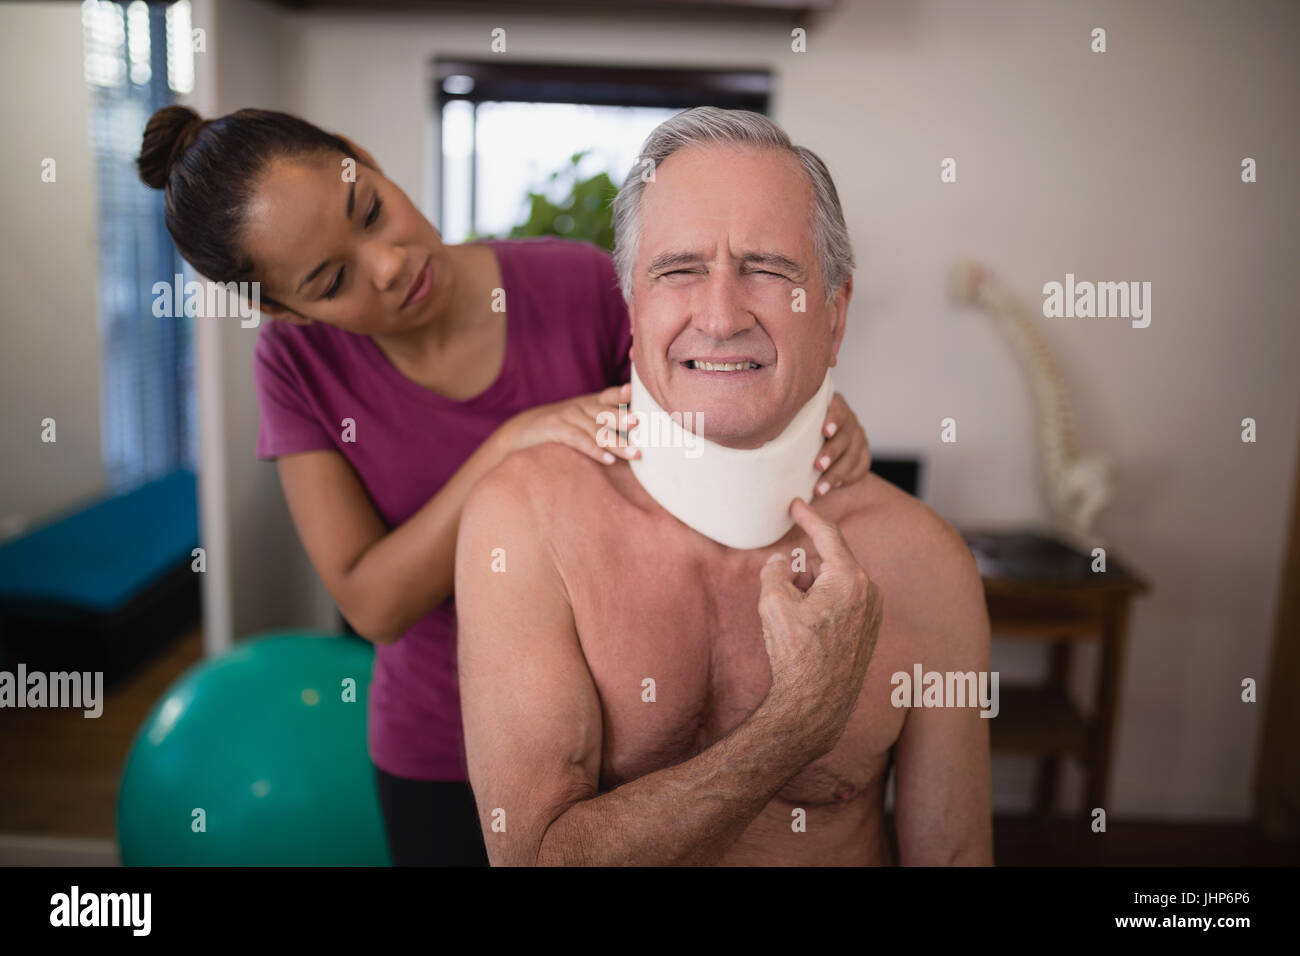 Female therapist looking at senior male patient grimacing with neck collar in hospital ward - Stock Image